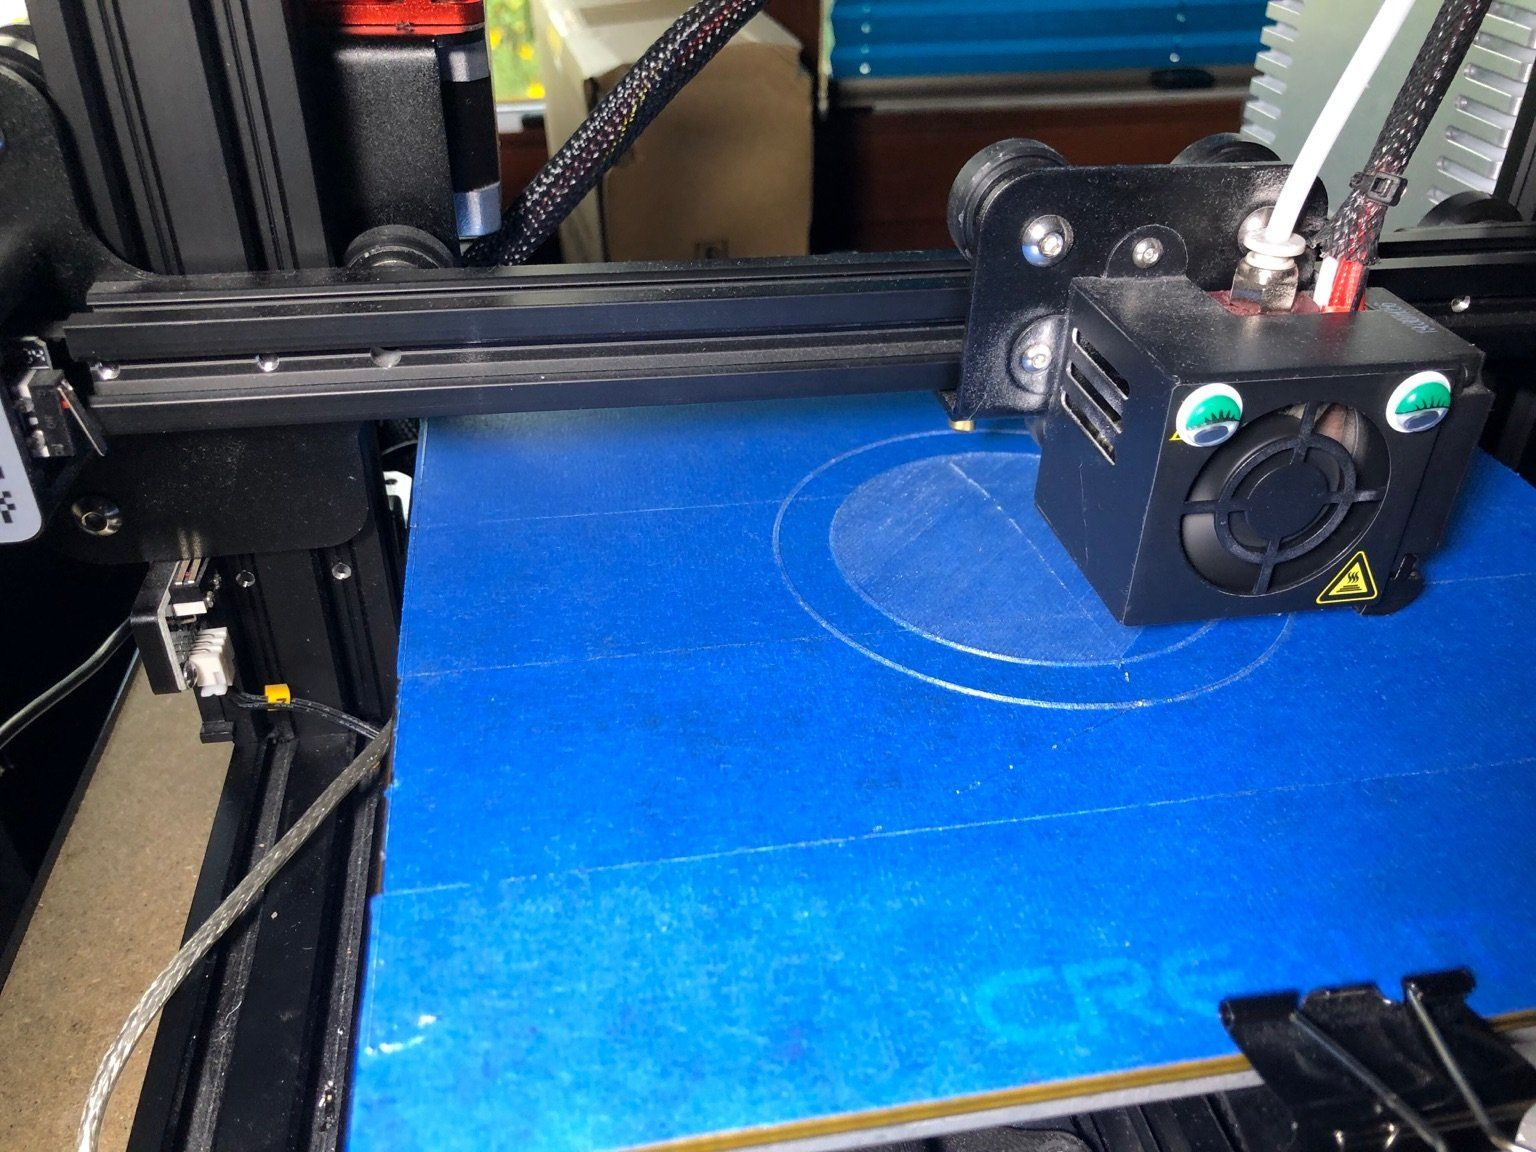 3D printer printing the flexible tin can lid on blue tape. The tape is there to make it stick to the build plate.